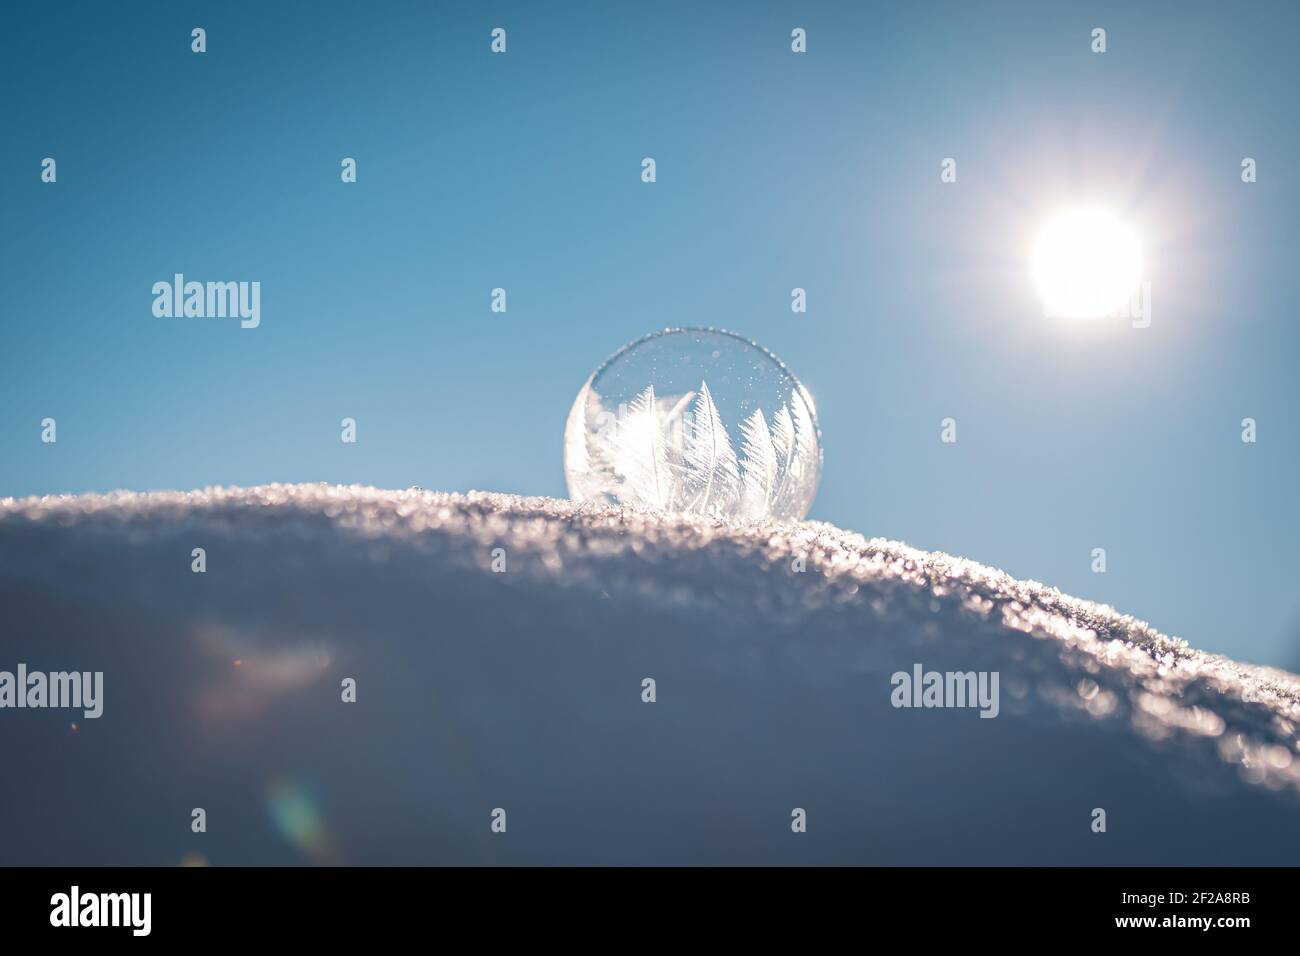 Frozen soap bubble with a beautiful pattern on the snow close up on a blurry background Stock Photo